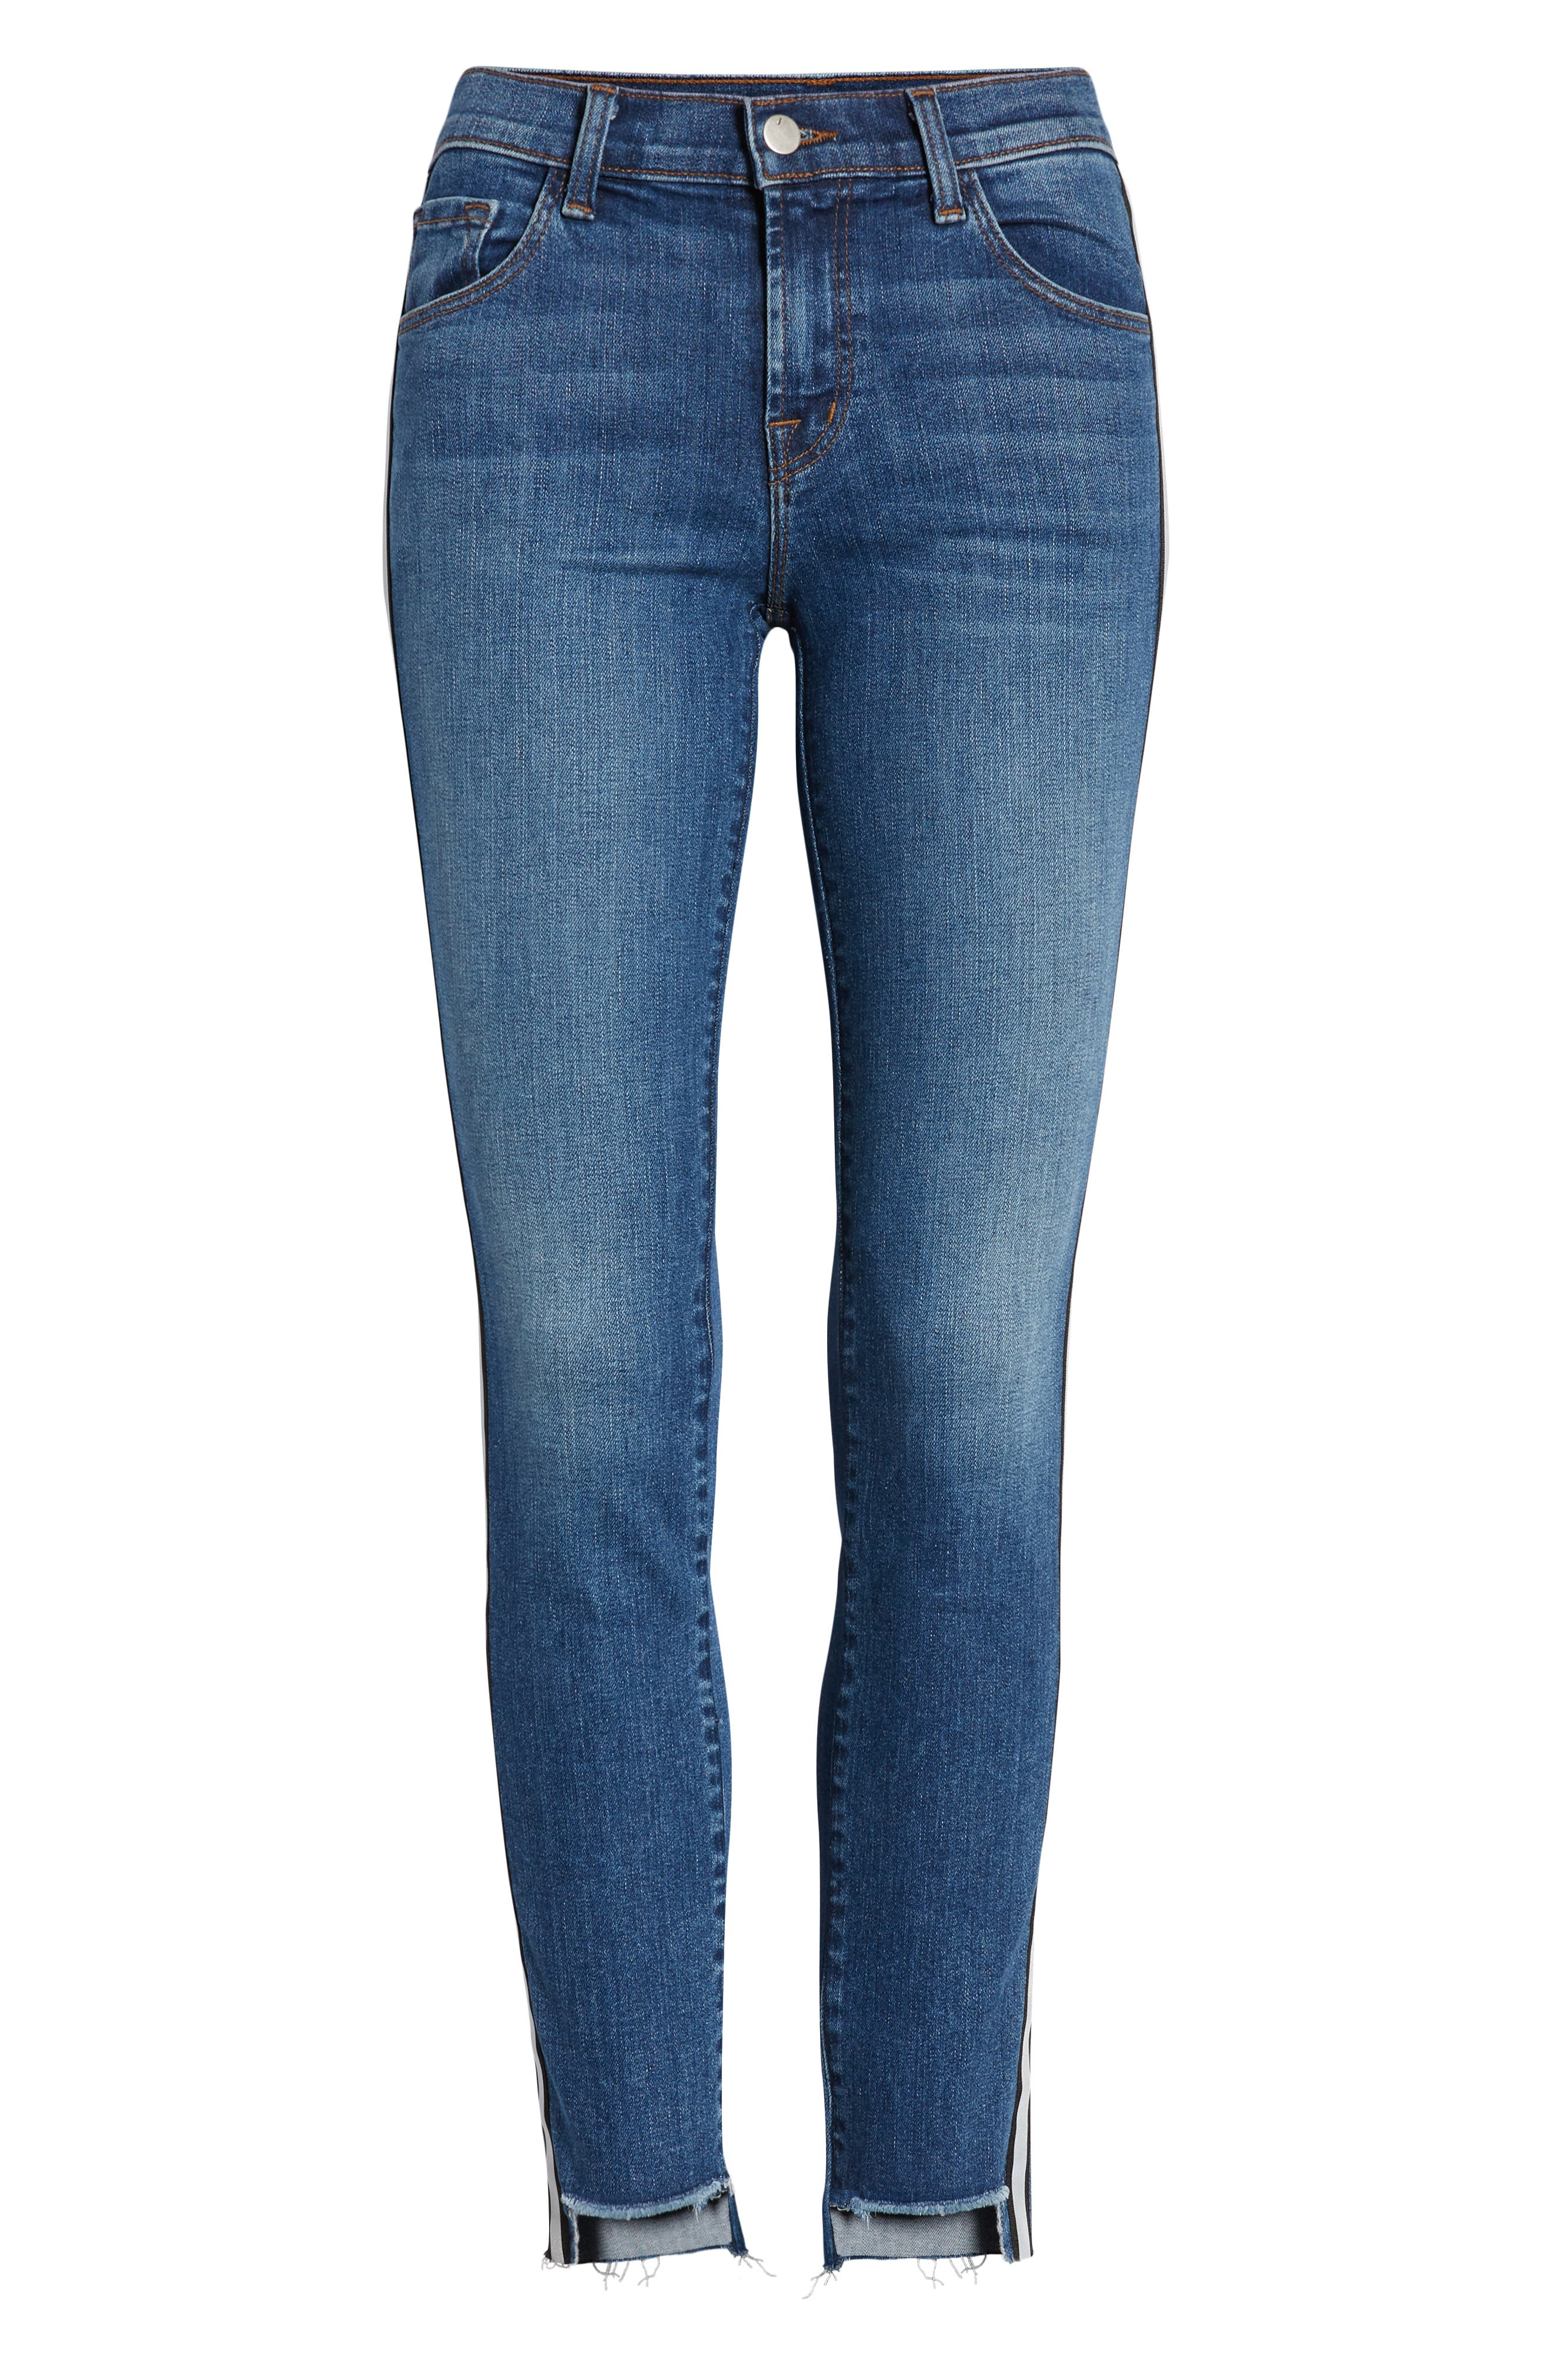 811 Skinny Jeans,                             Alternate thumbnail 7, color,                             REFLECTING